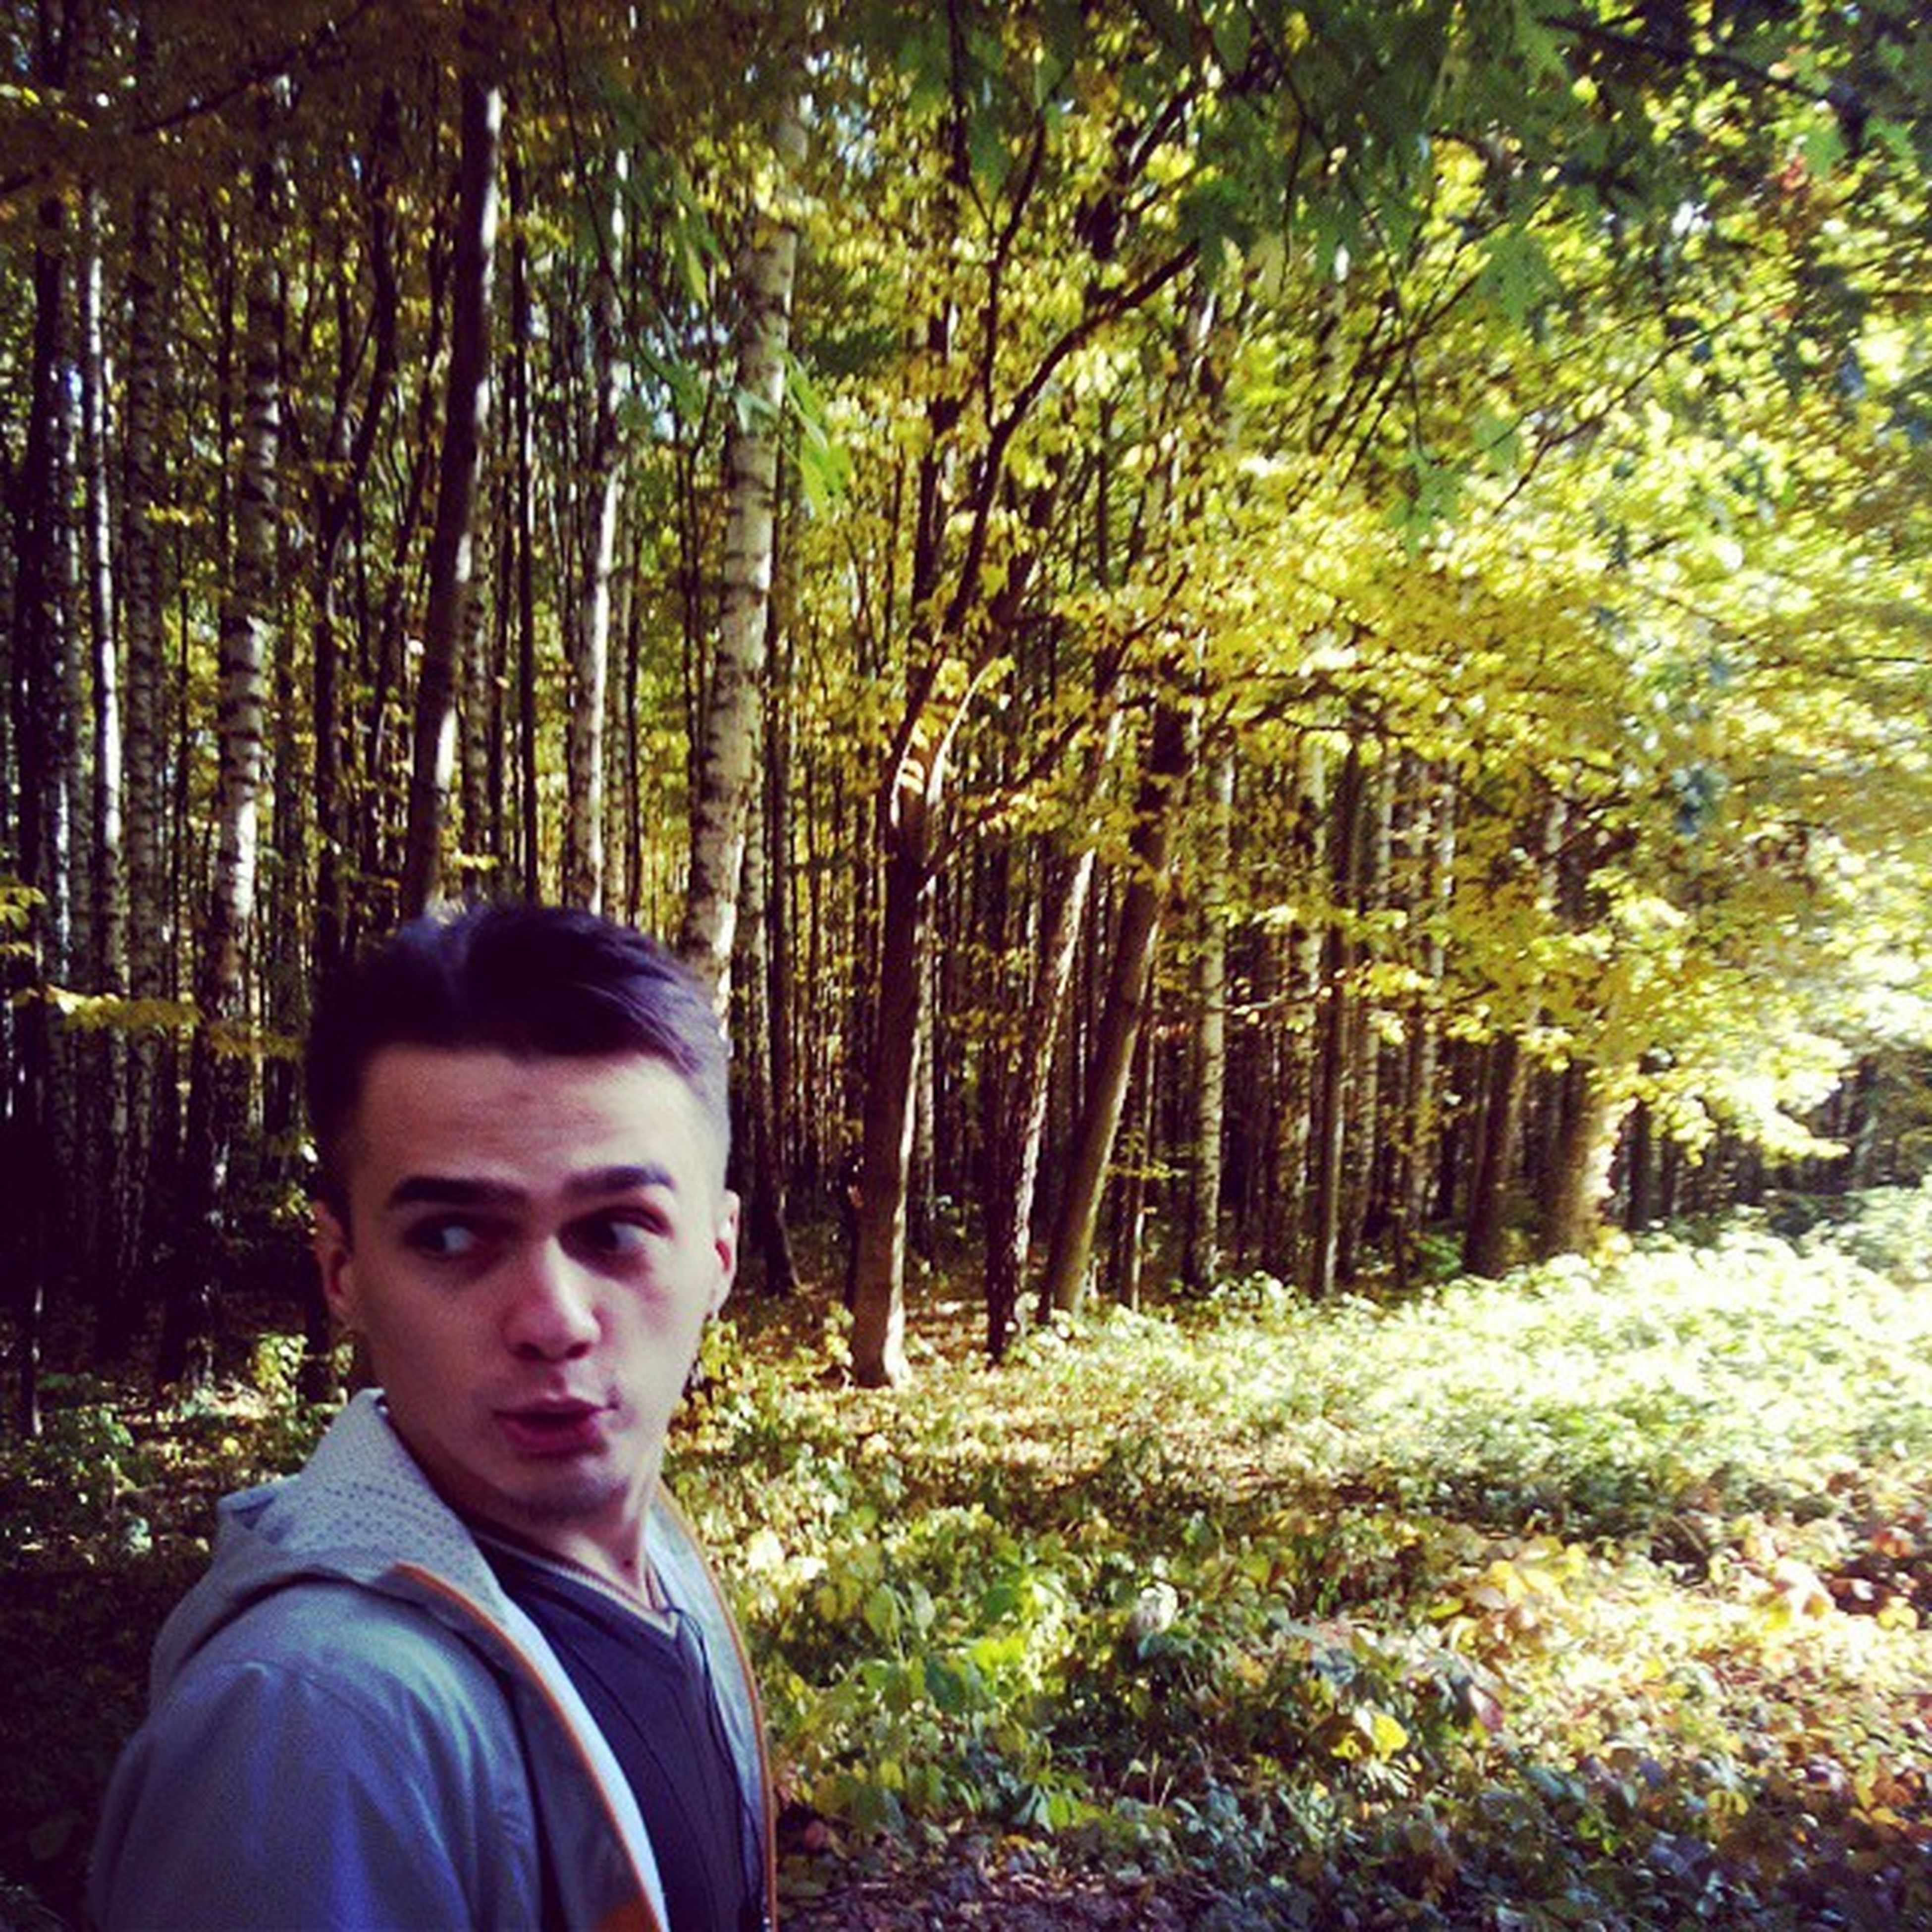 tree, person, lifestyles, leisure activity, looking at camera, portrait, casual clothing, young adult, forest, headshot, front view, smiling, young men, growth, standing, boys, green color, happiness